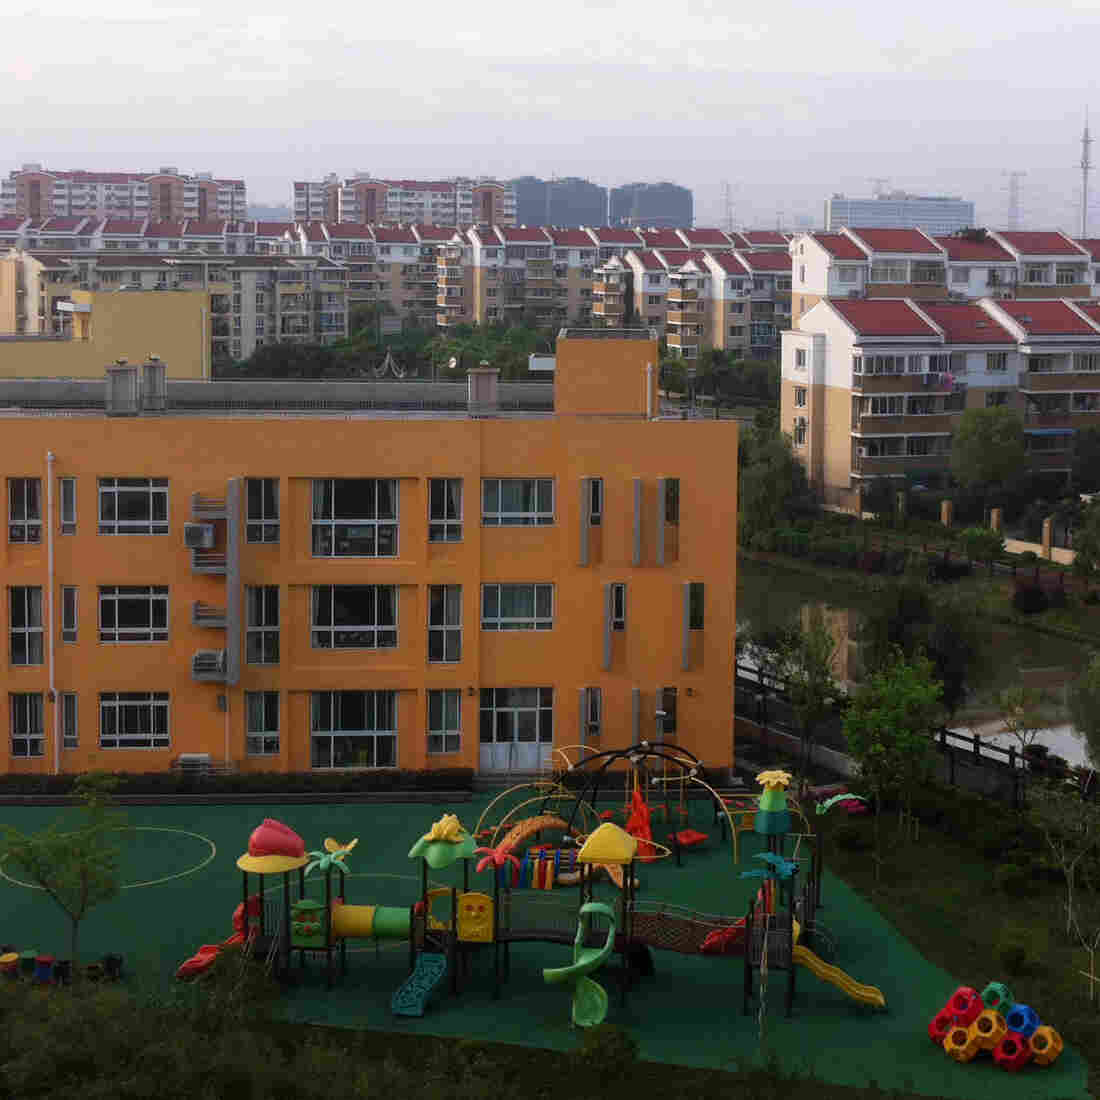 Apartments, apartments, everywhere; nor any flat to buy: Survey after survey reveals that young Chinese are stressed out — and skyrocketing property prices are one of the main reasons.